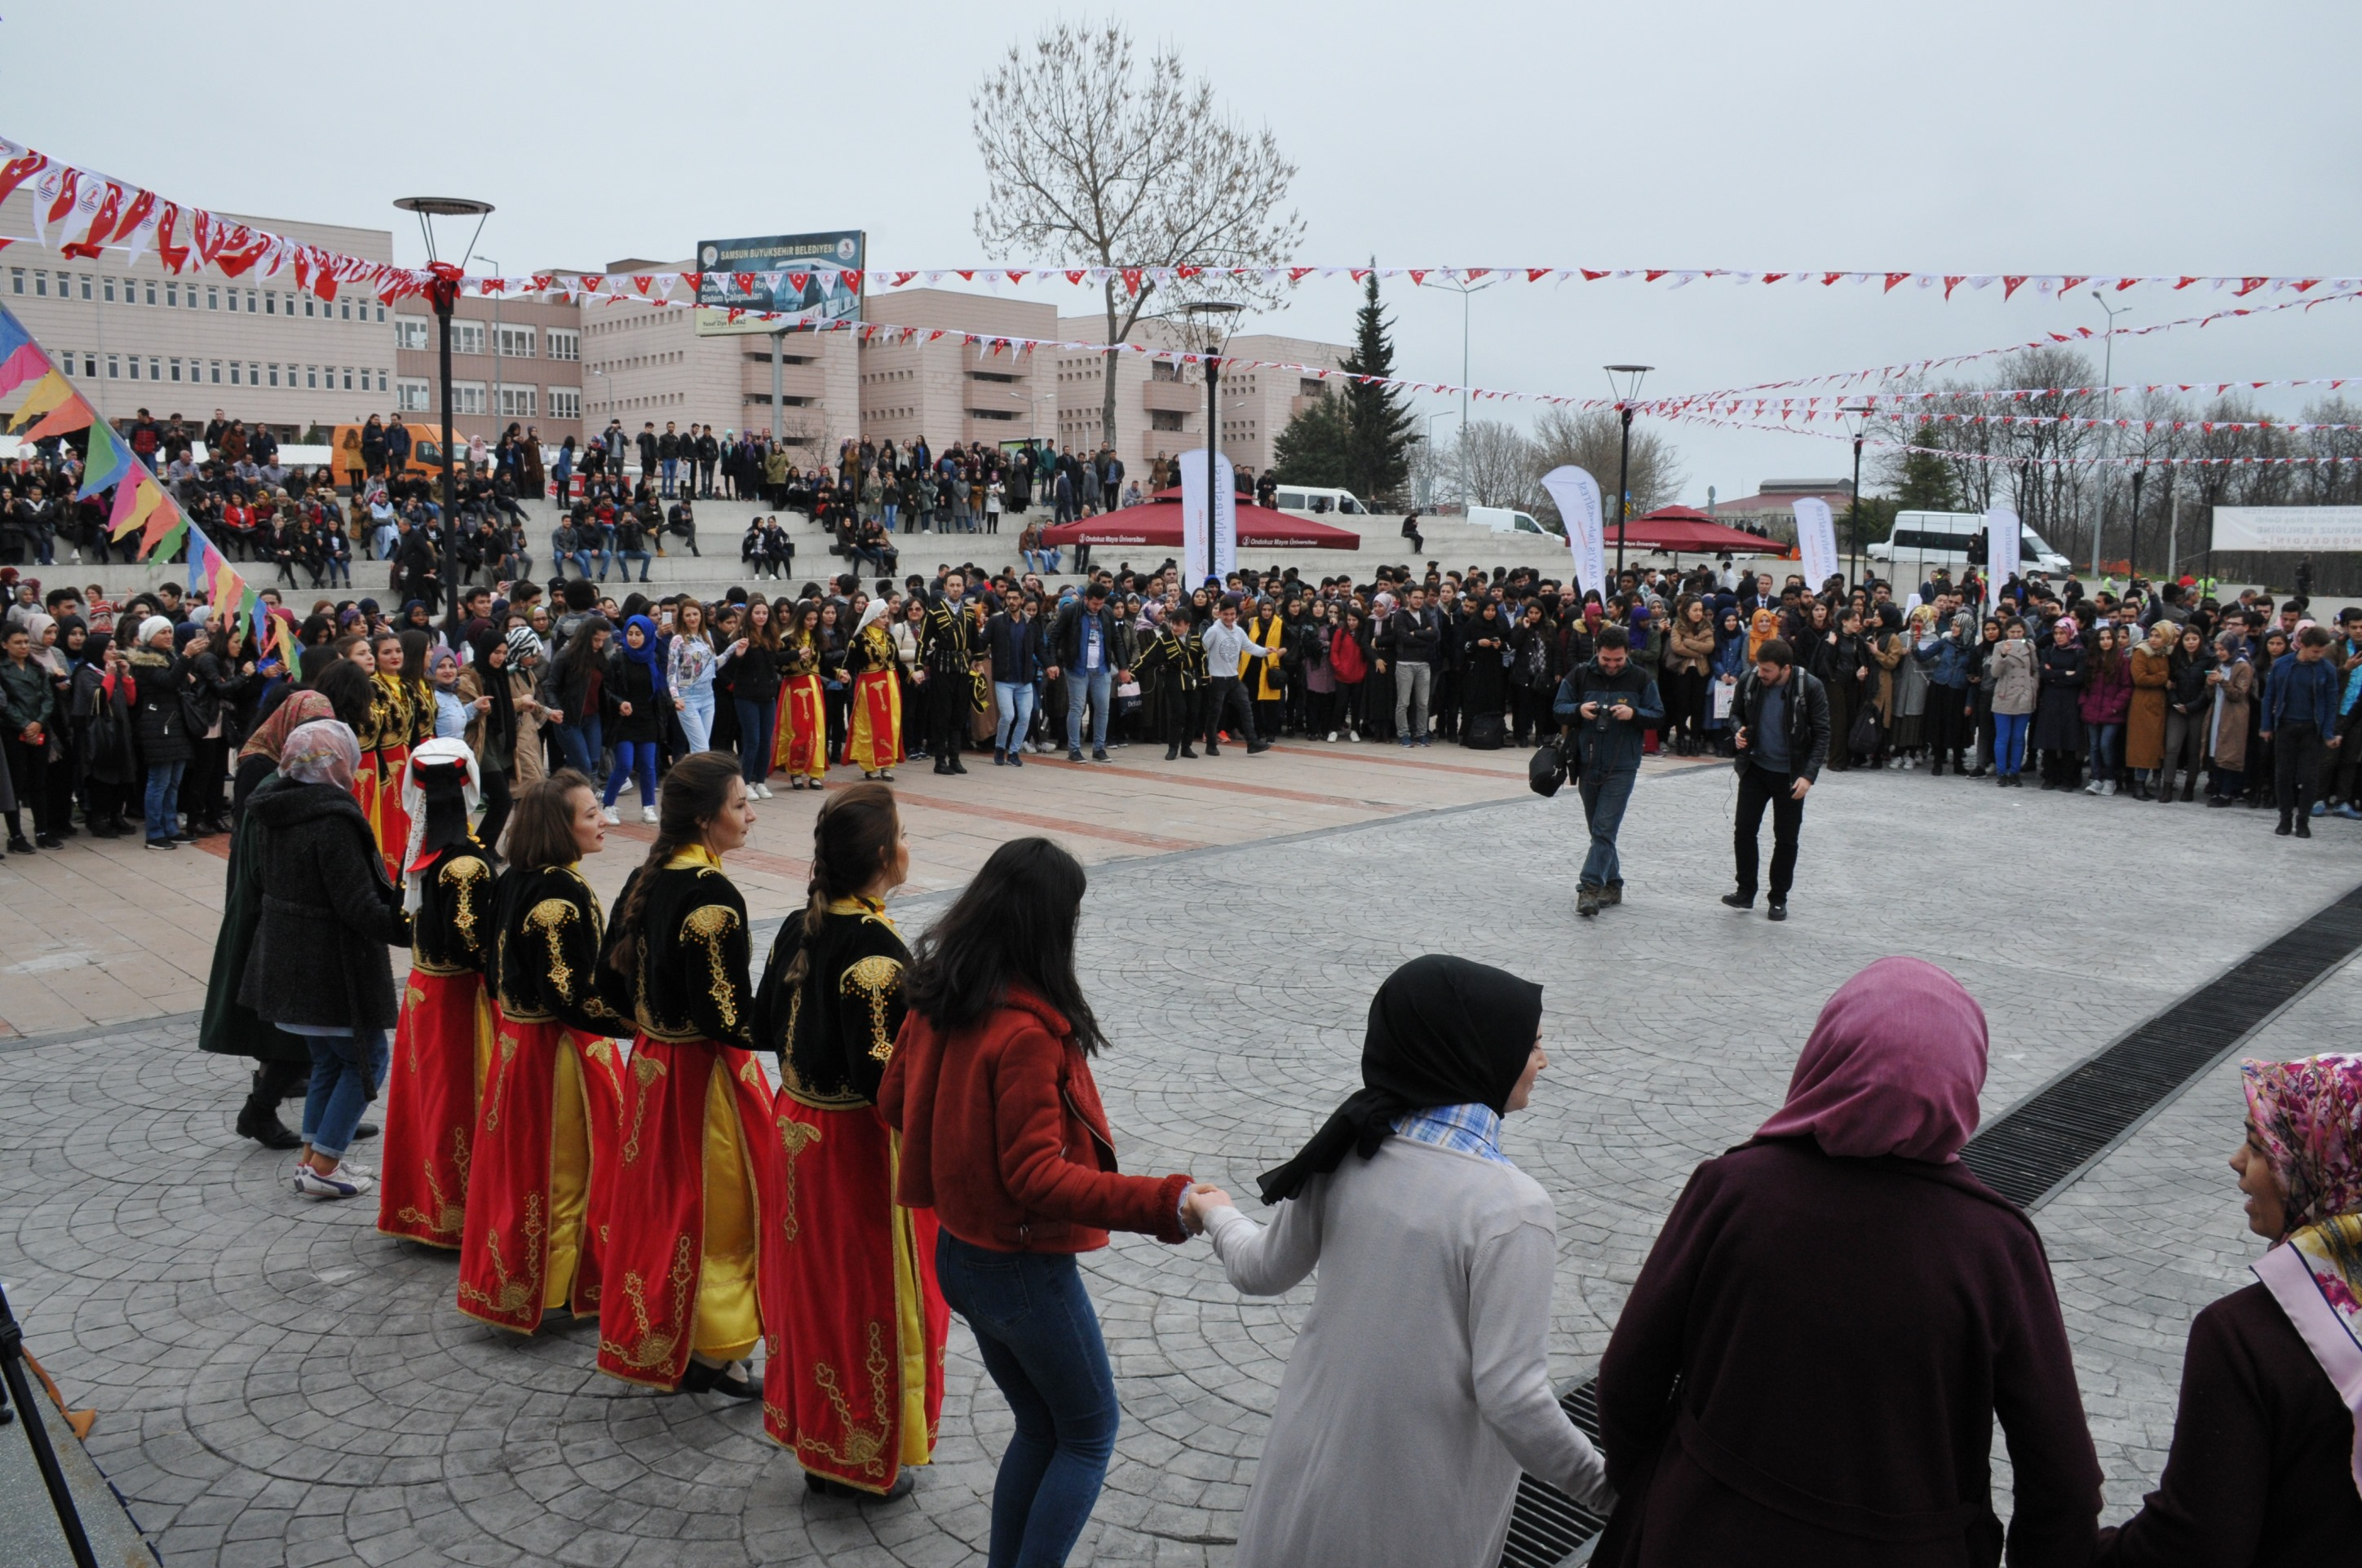 http://www.omu.edu.tr/sites/default/files/files/omu_family_enthusiastically_celebrated_newroz/dsc_0186.jpg